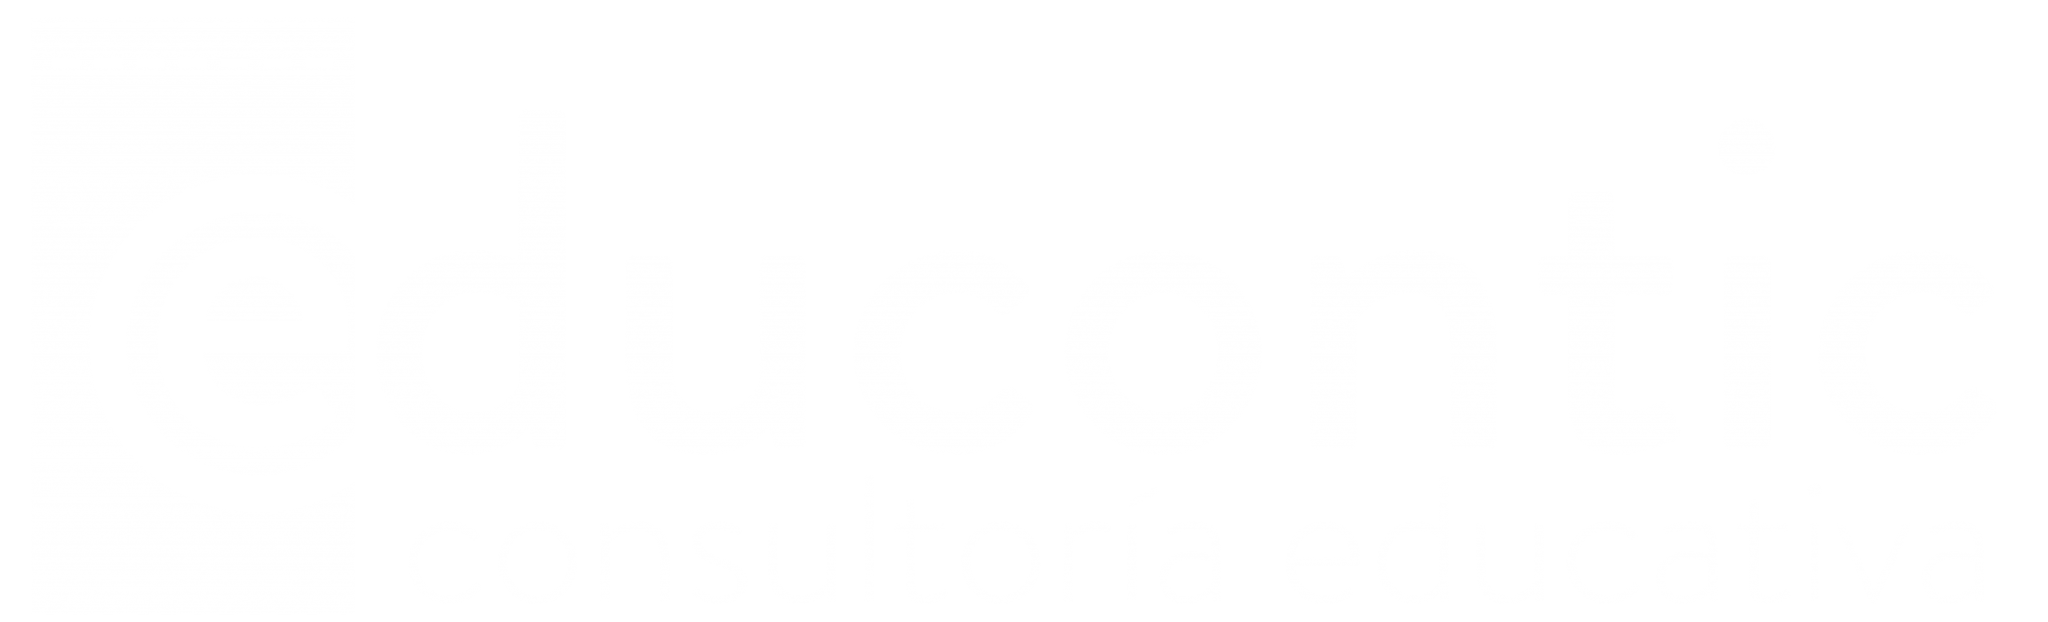 Educontic logo